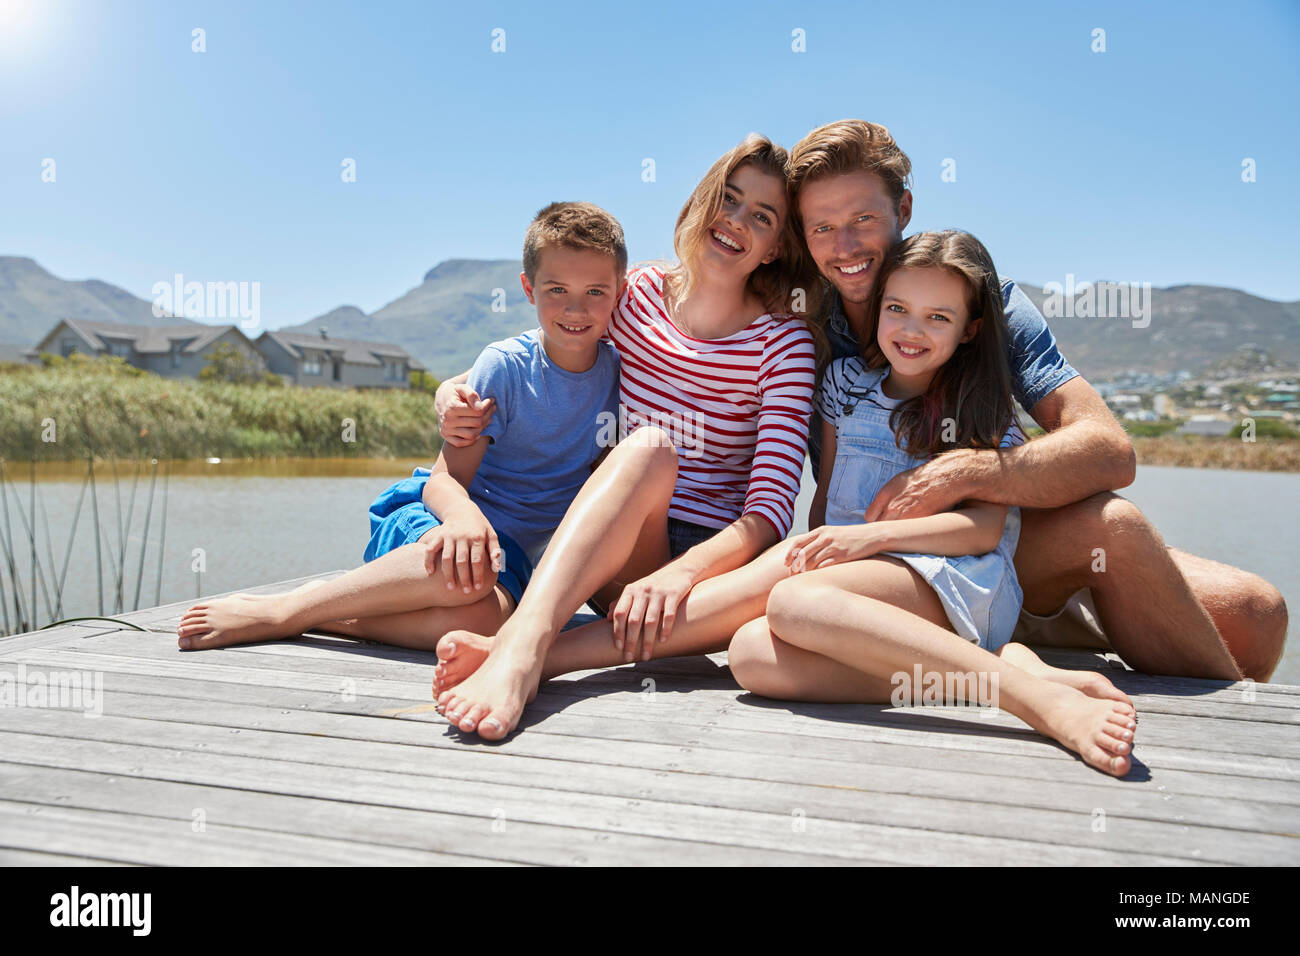 Portrait Of Smiling Family Sitting On Wooden Jetty By Lake - Stock Image